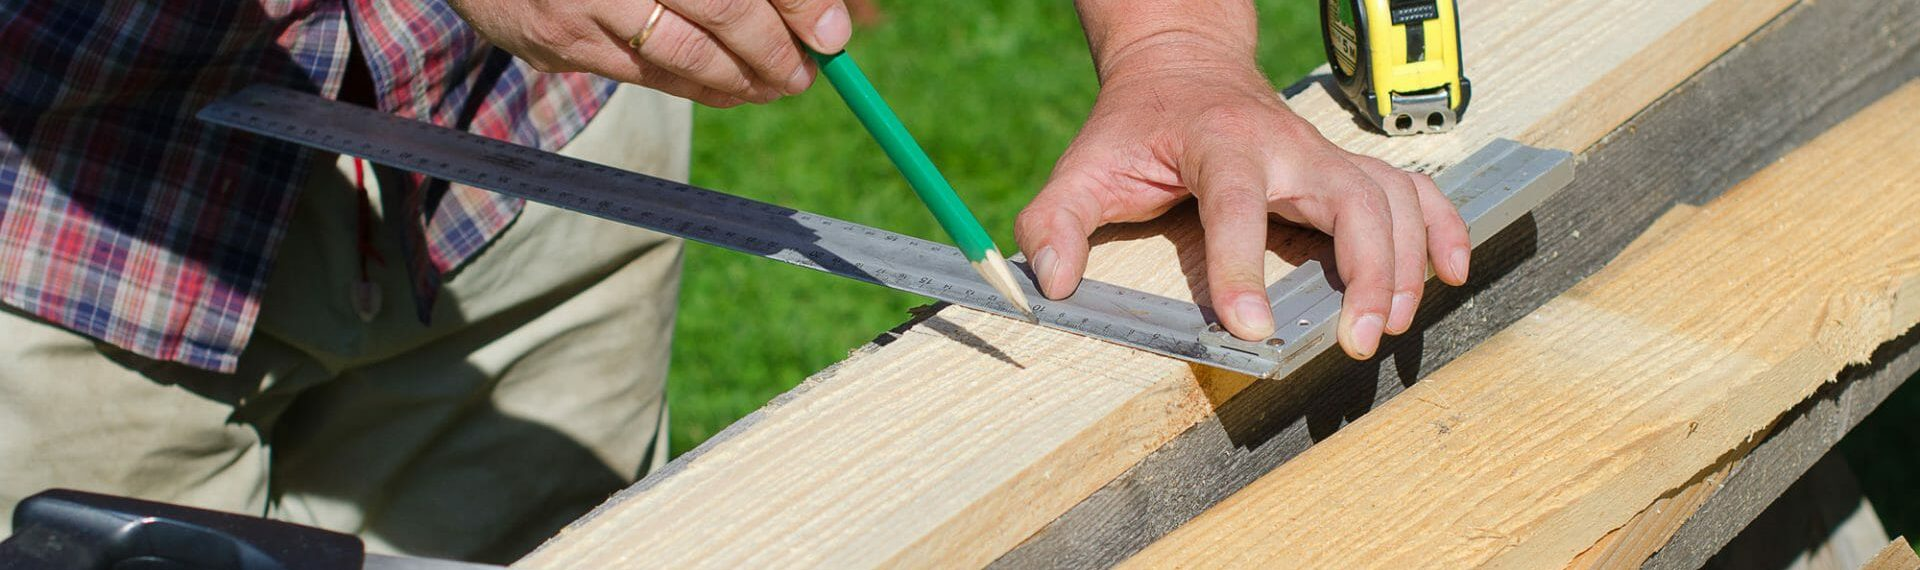 carpenter with tools marking up wood